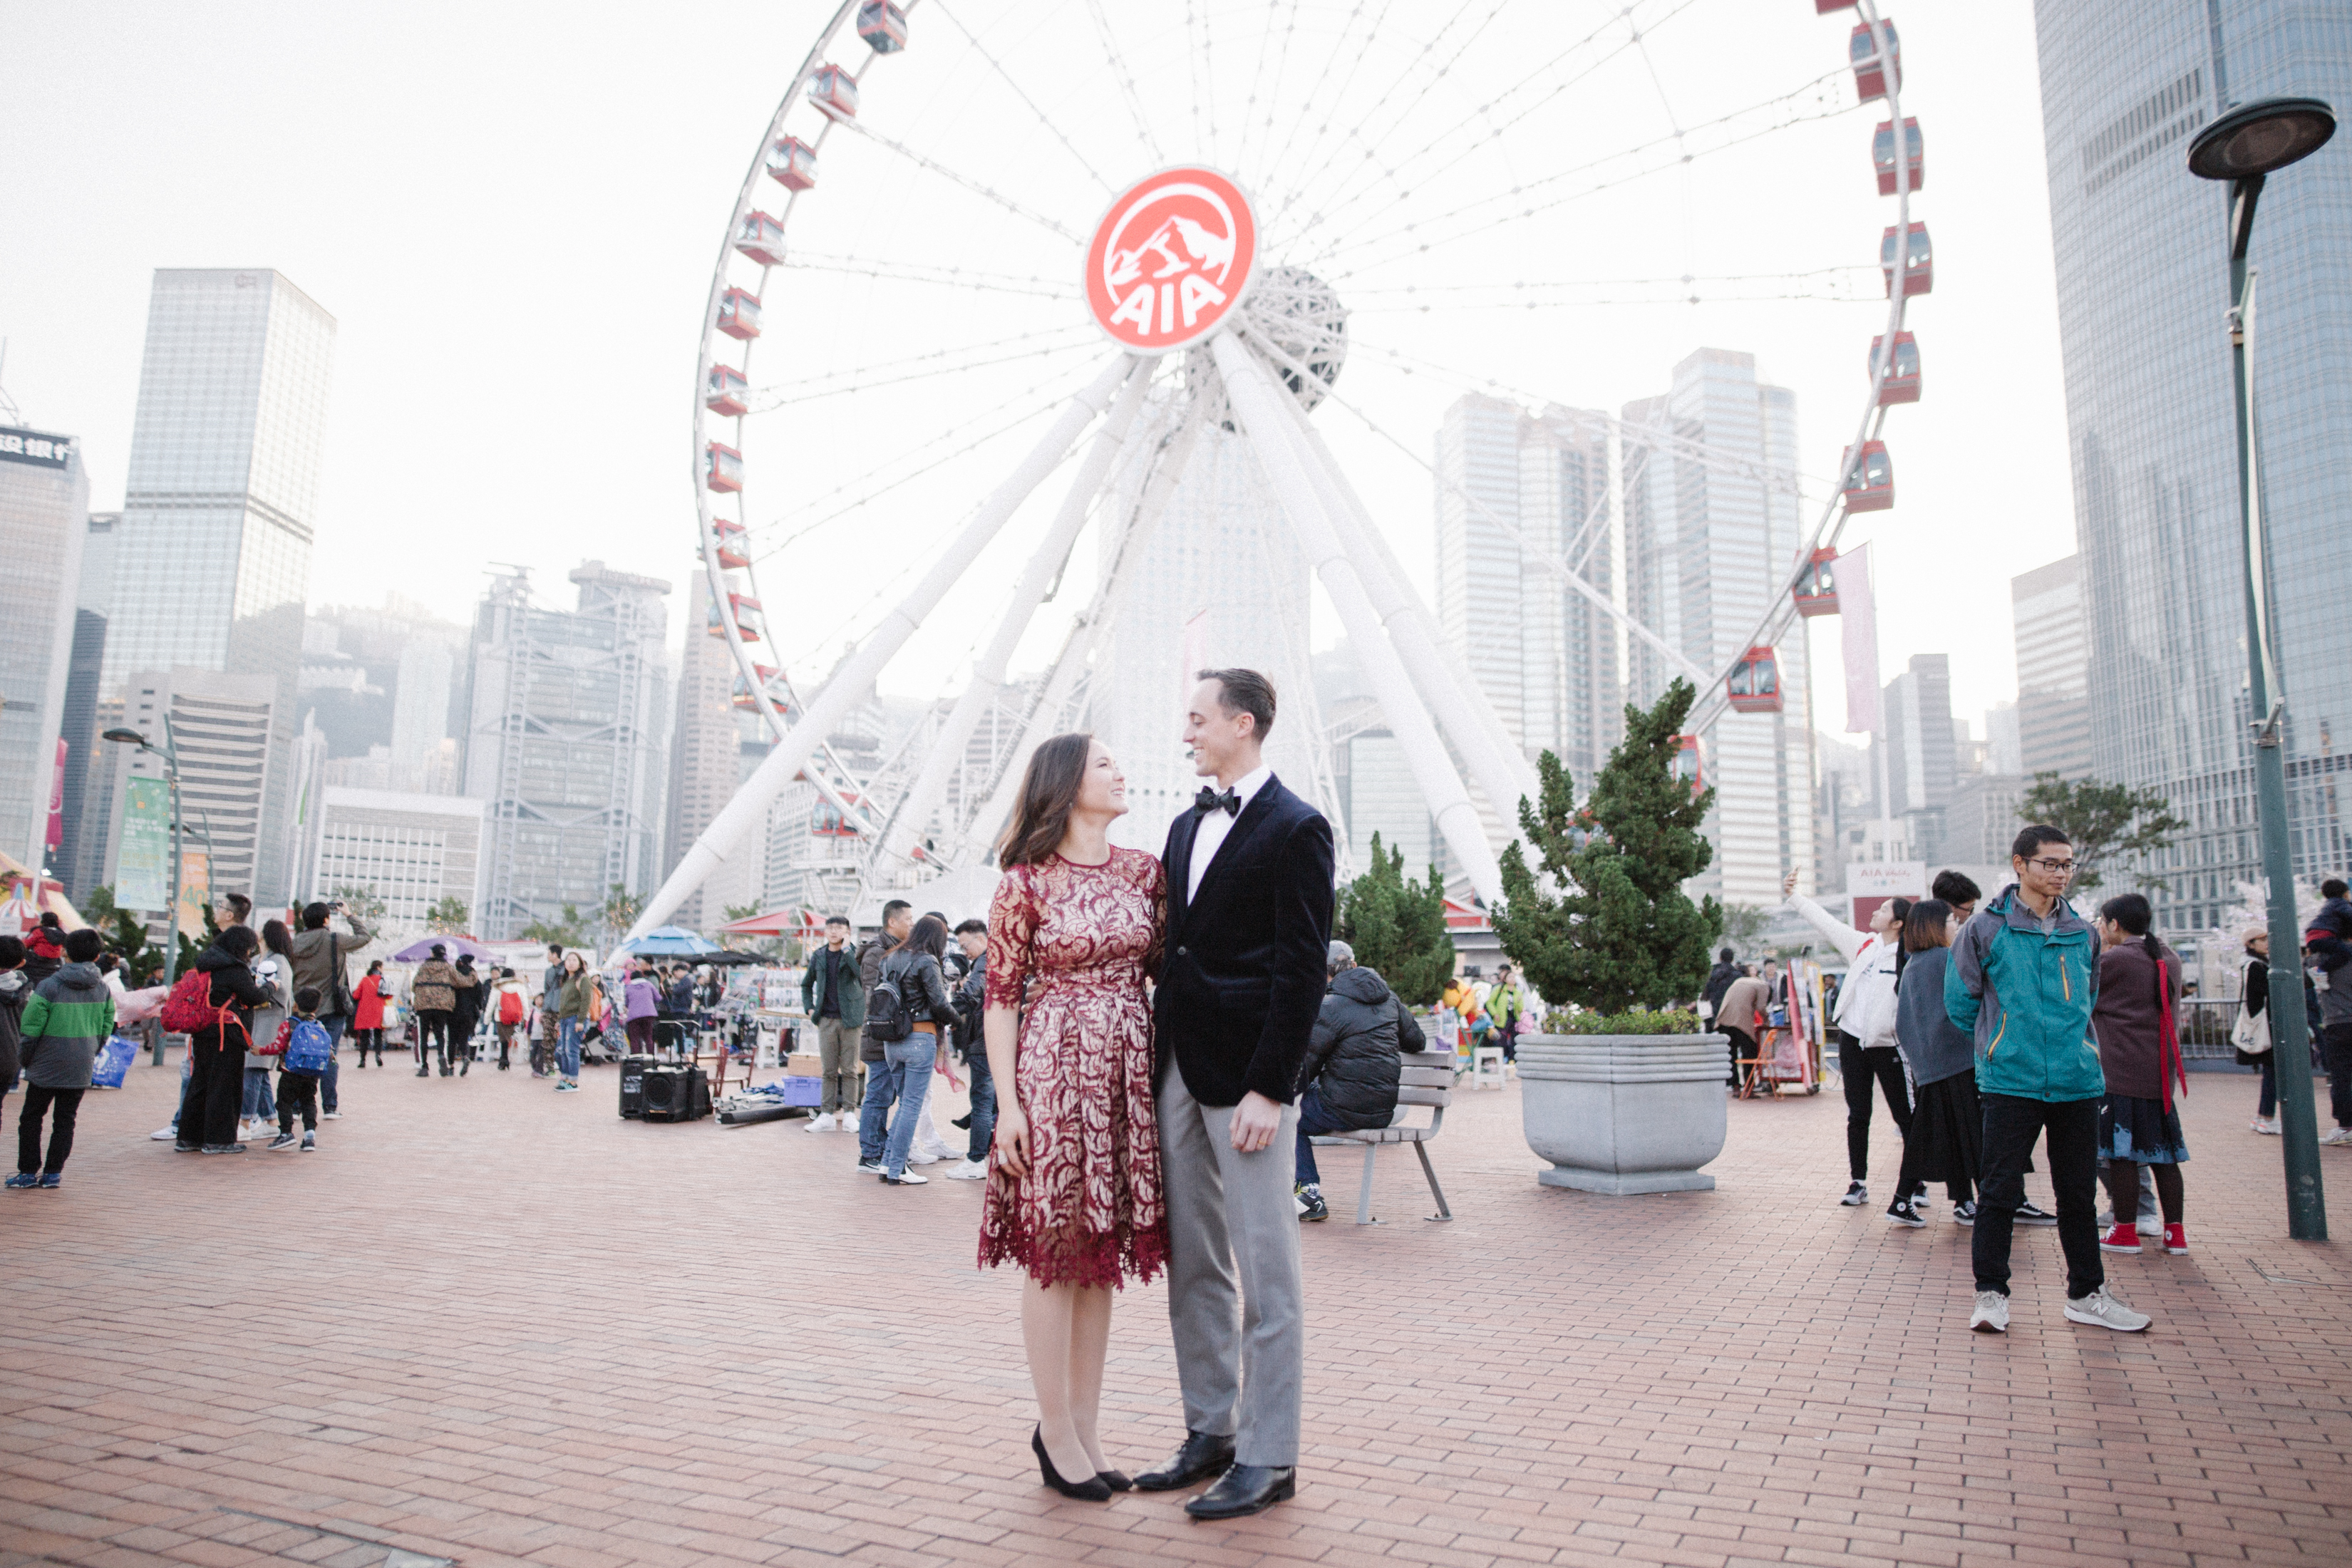 (Photo: Flytographer Chris in Hong Kong)